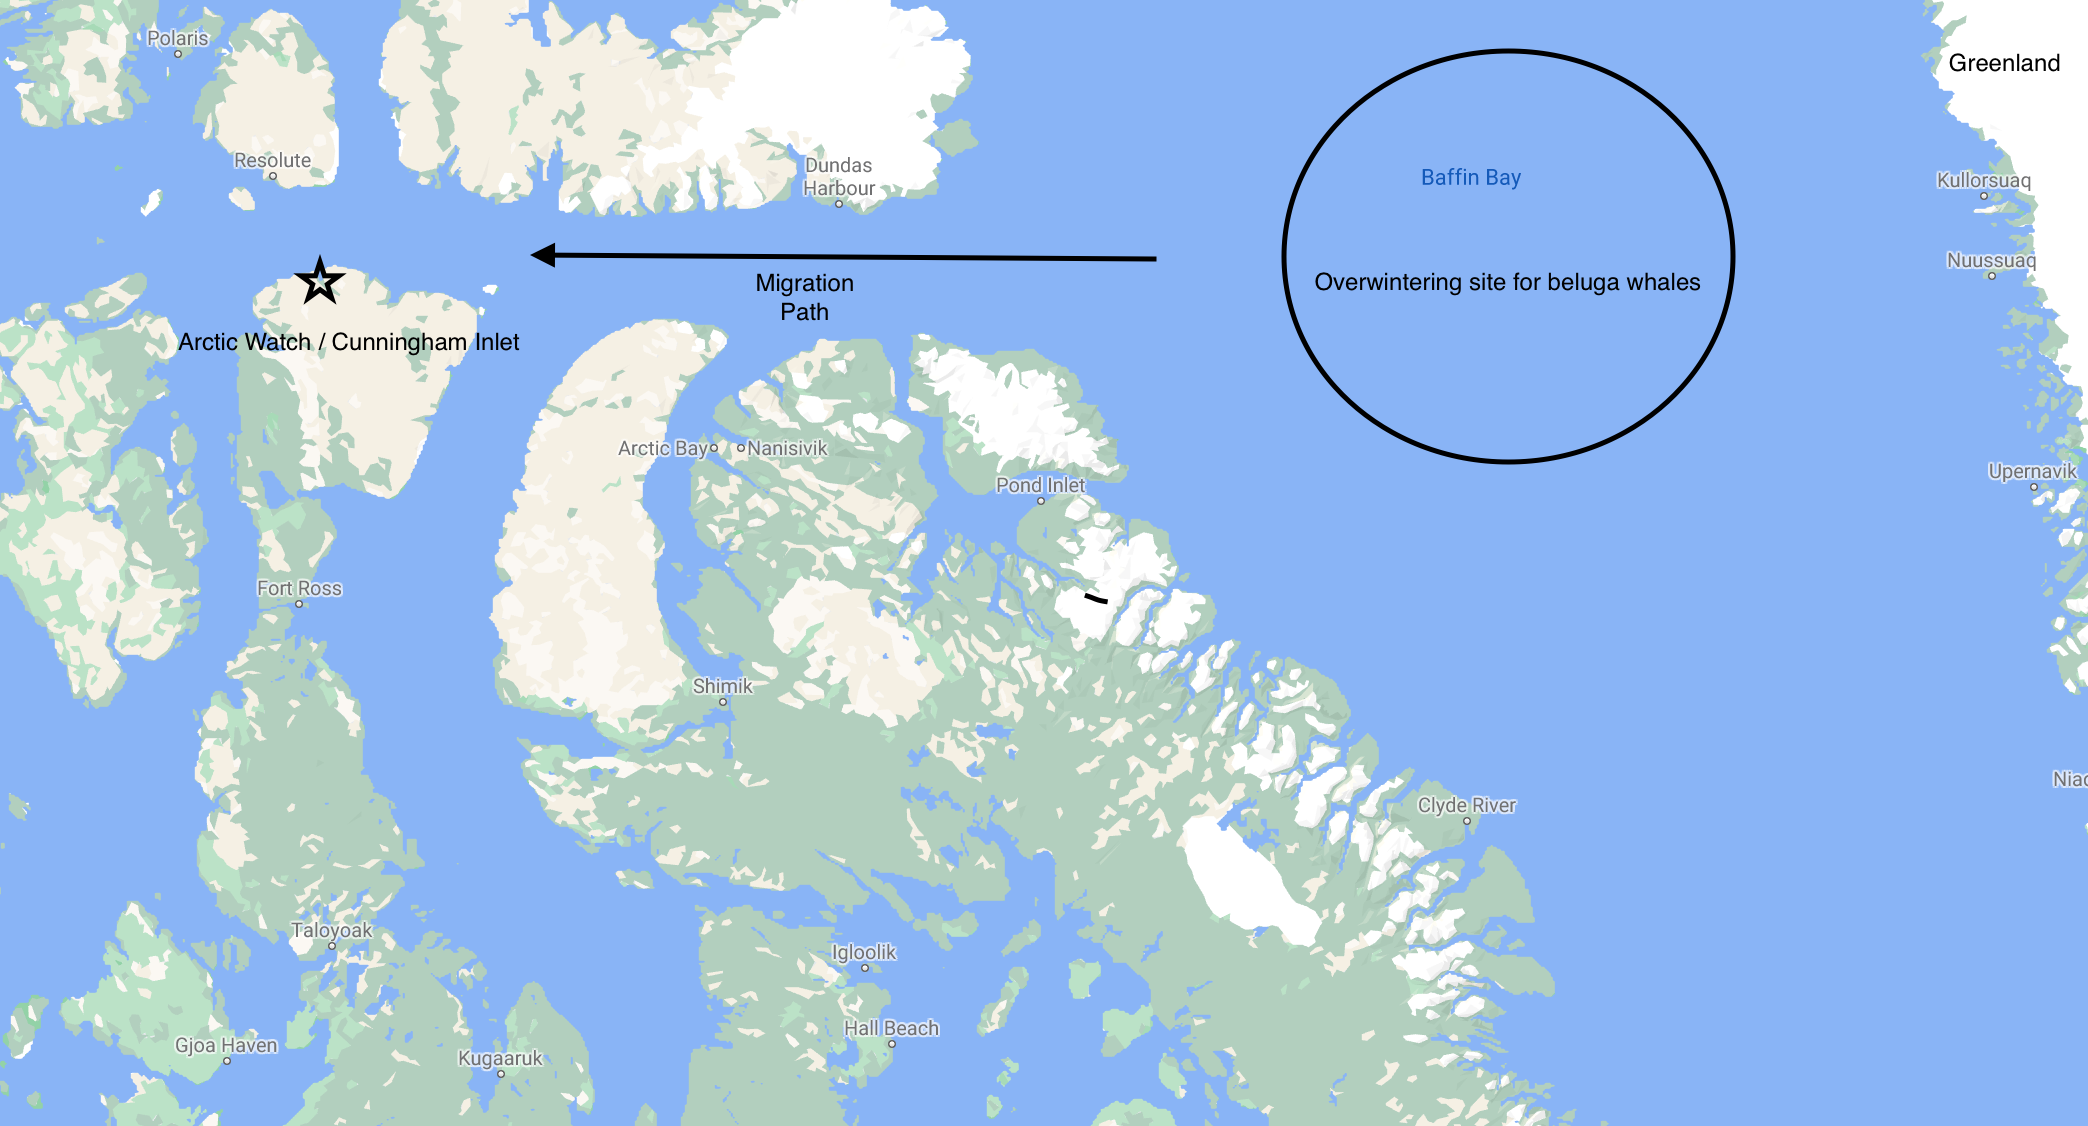 The migration path of the Cunningham Inlet beluga whales